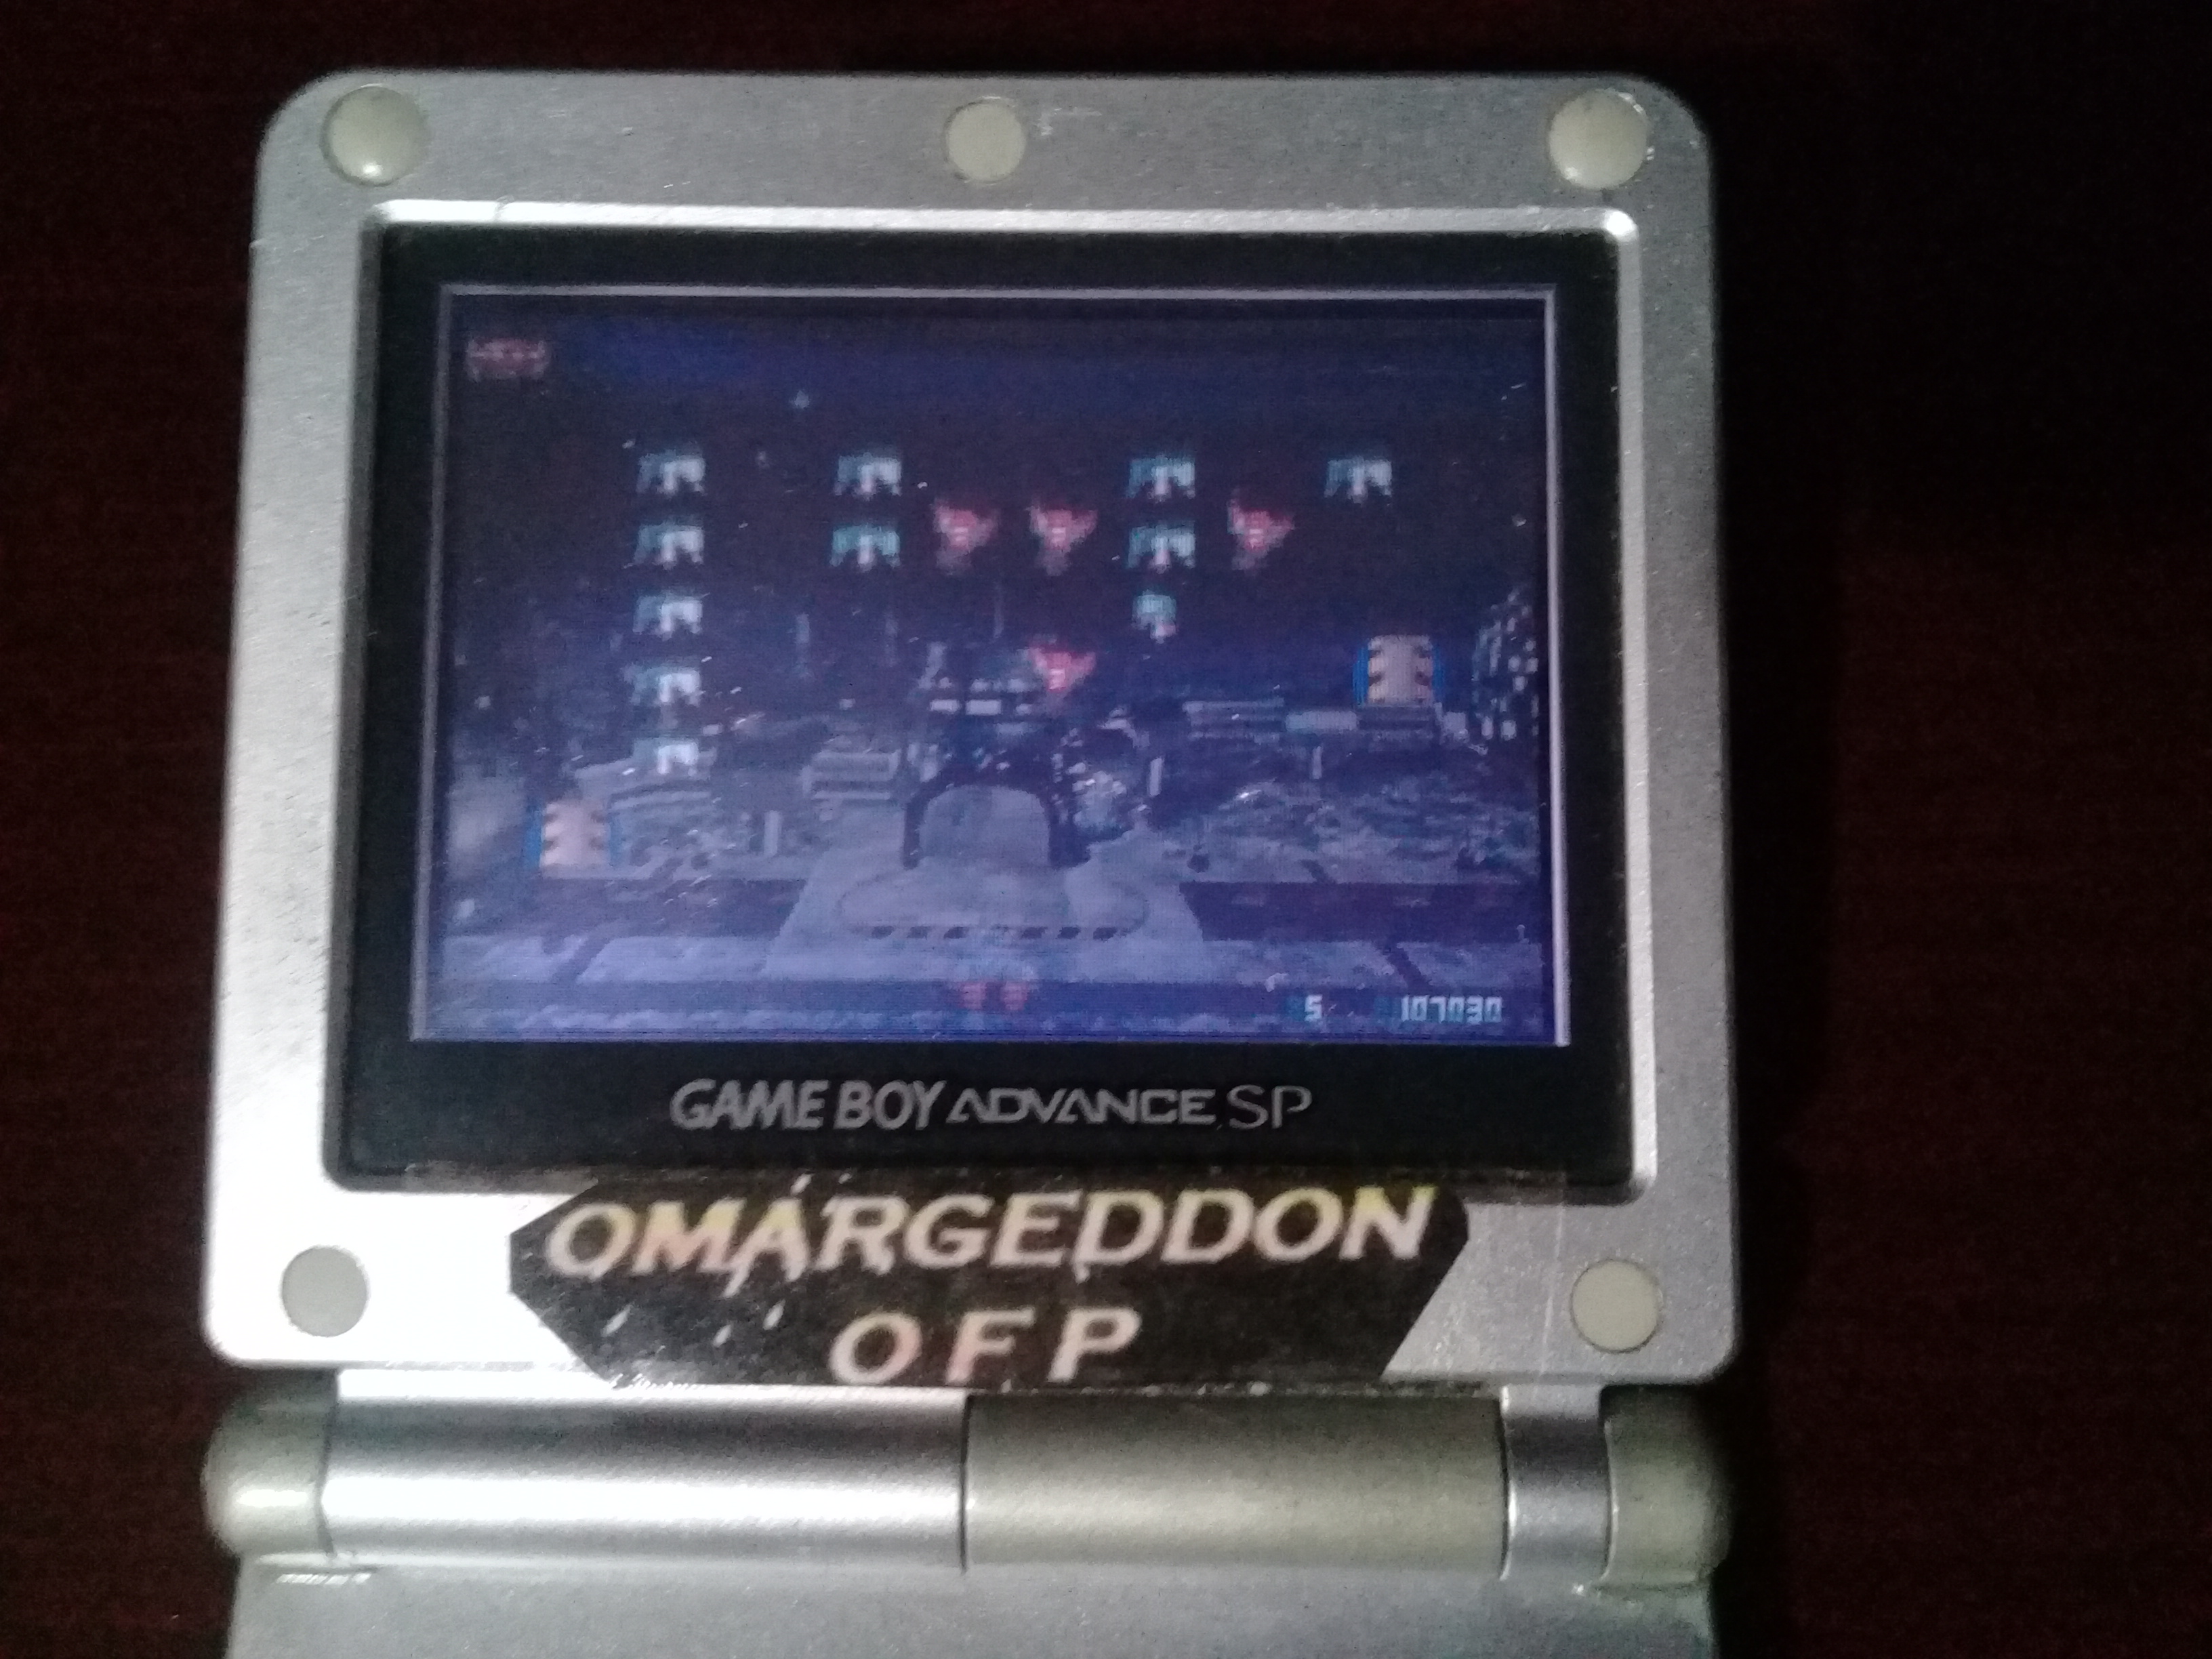 omargeddon: Space Invaders / Space Invaders EX (GBA) 107,030 points on 2019-01-23 21:08:09